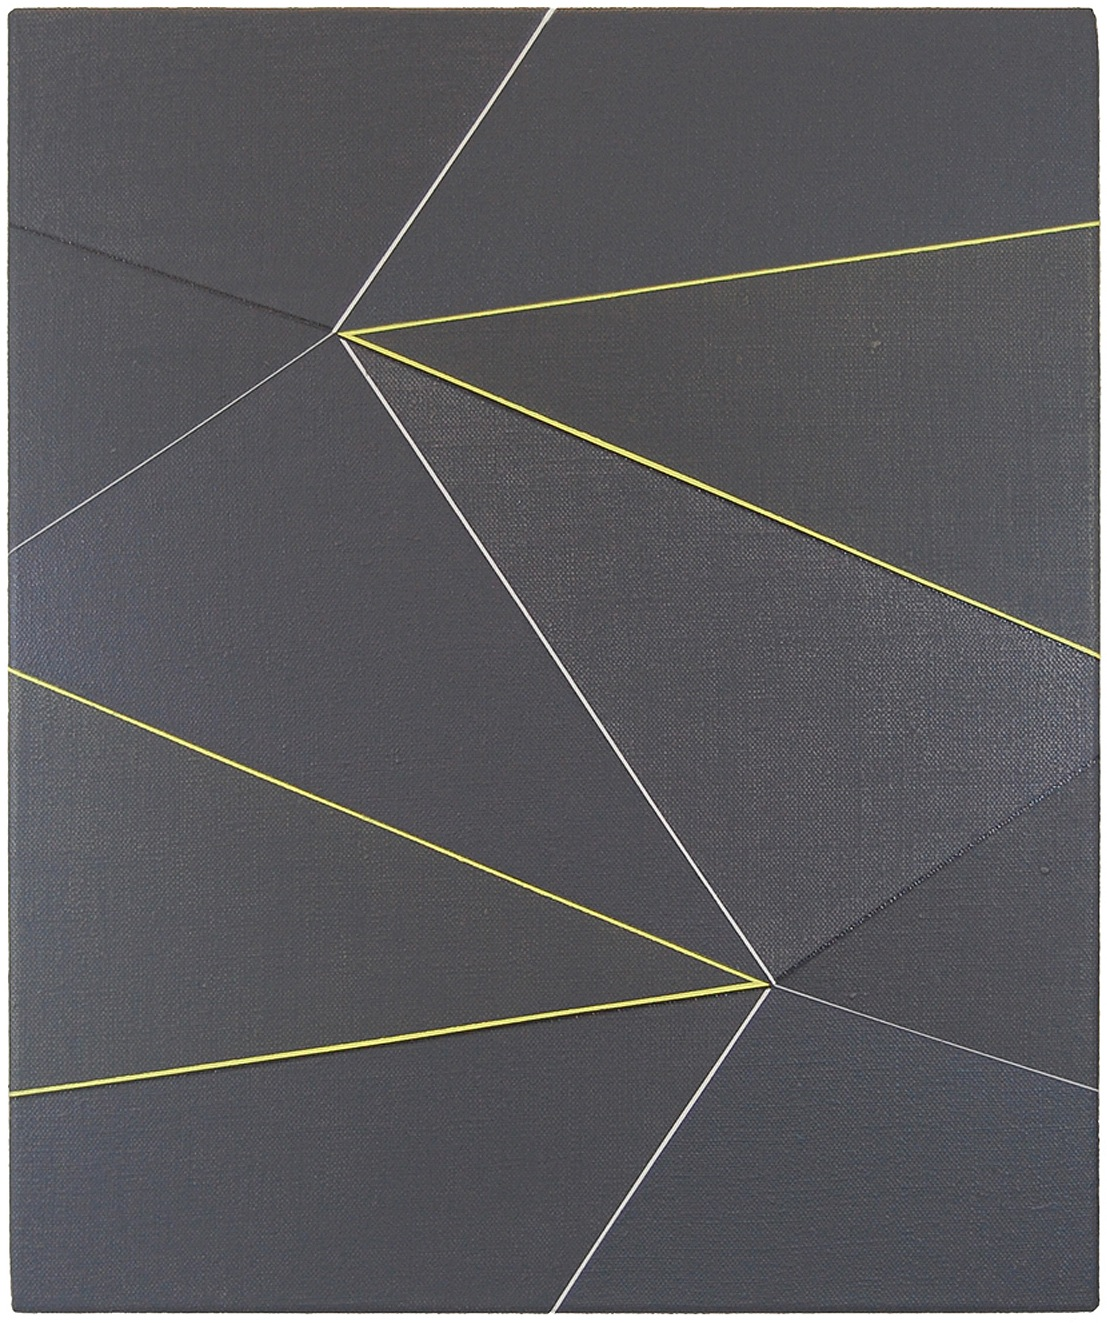 Katrina Blannin, Double Hexad Black Yellow, acrylic on Linen, 60 x 50 cm, 2013 (